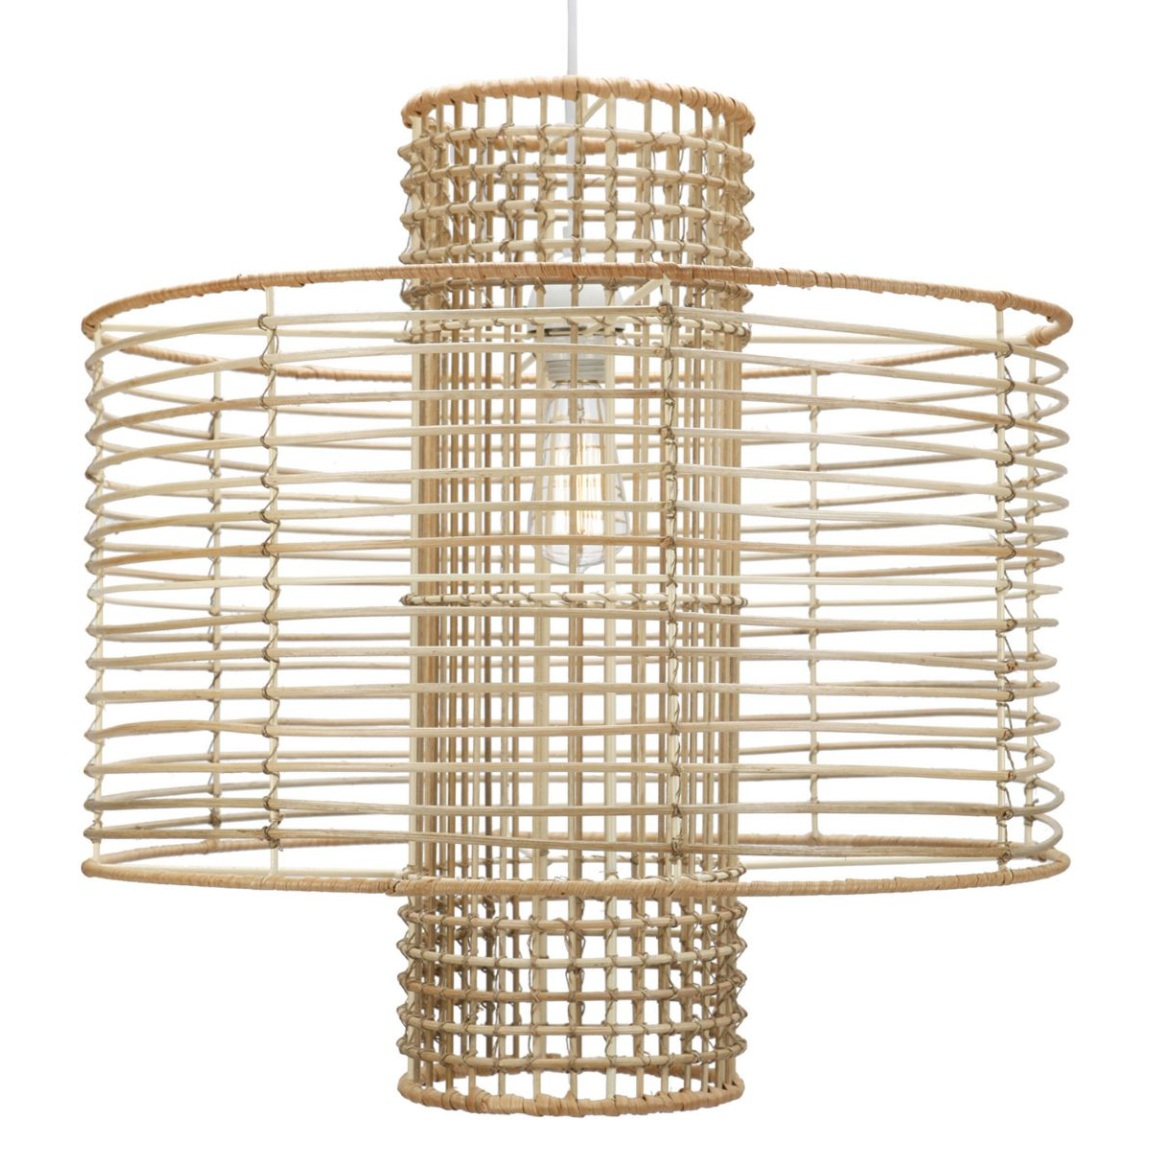 Rattan wrapped wire frame makes a sculptural statement